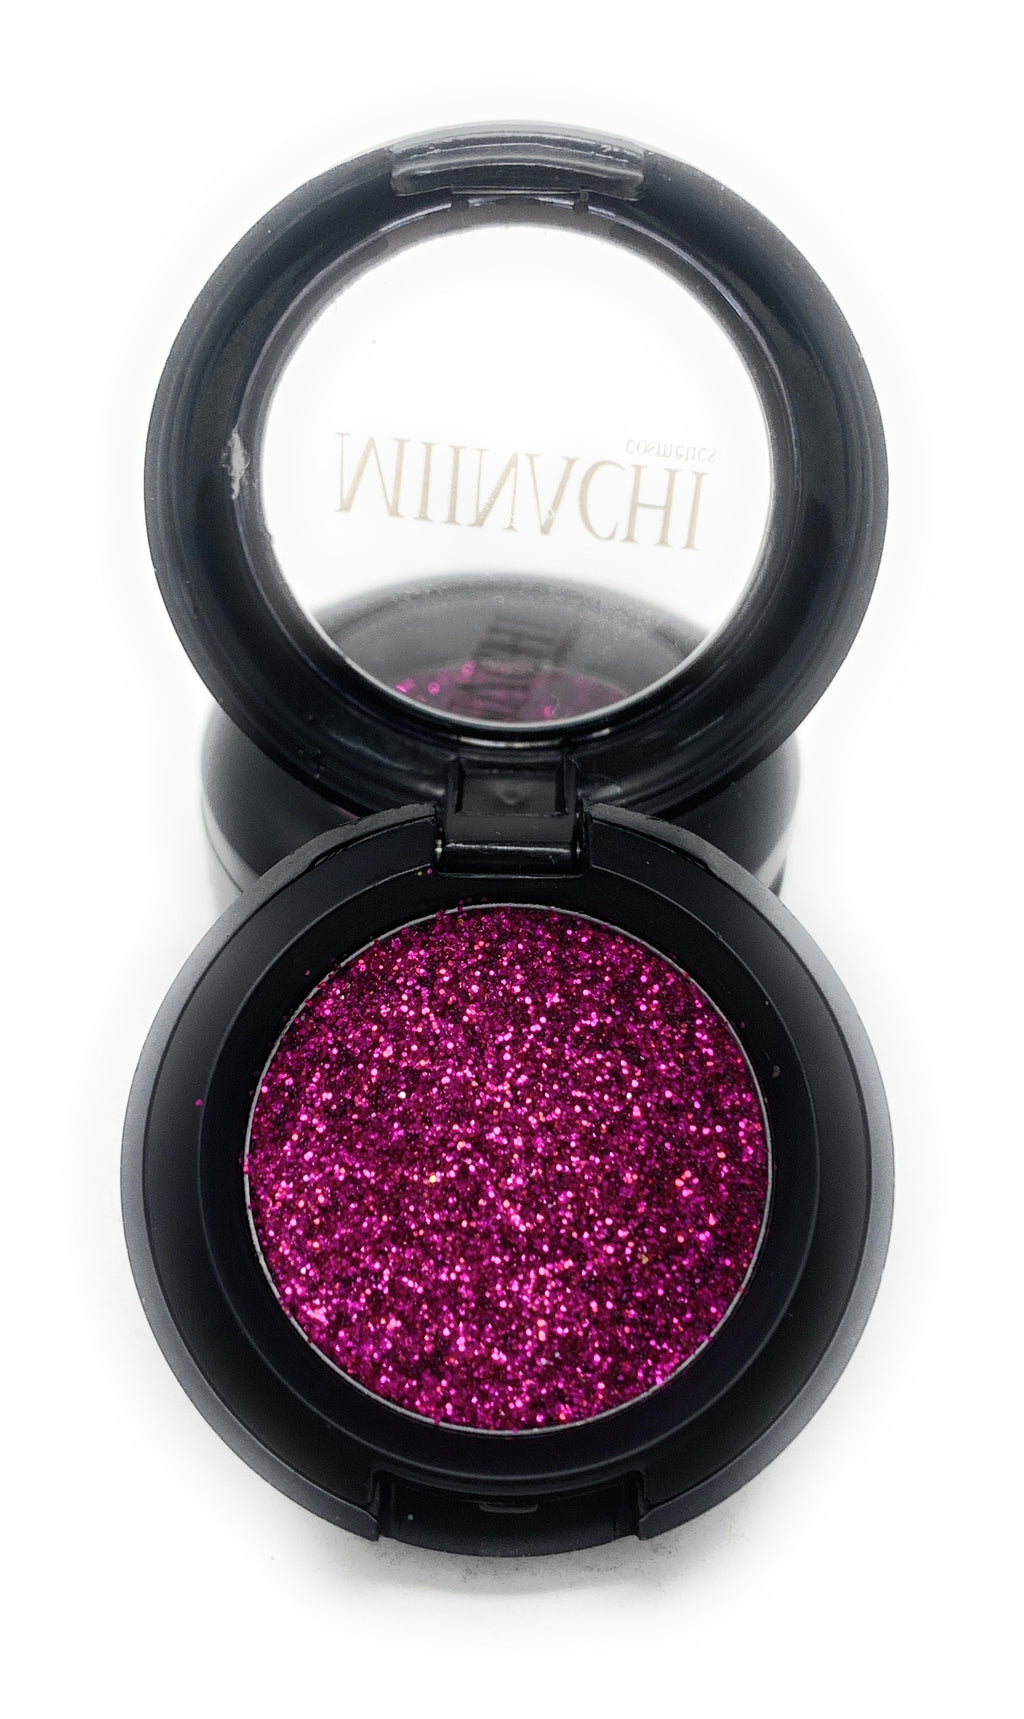 Single Pressed Glitter in the shade Berry, No Glue Needed, In Compact, Pigmented, No Fall Out, Glitter, Cosmetic Grade Glitter